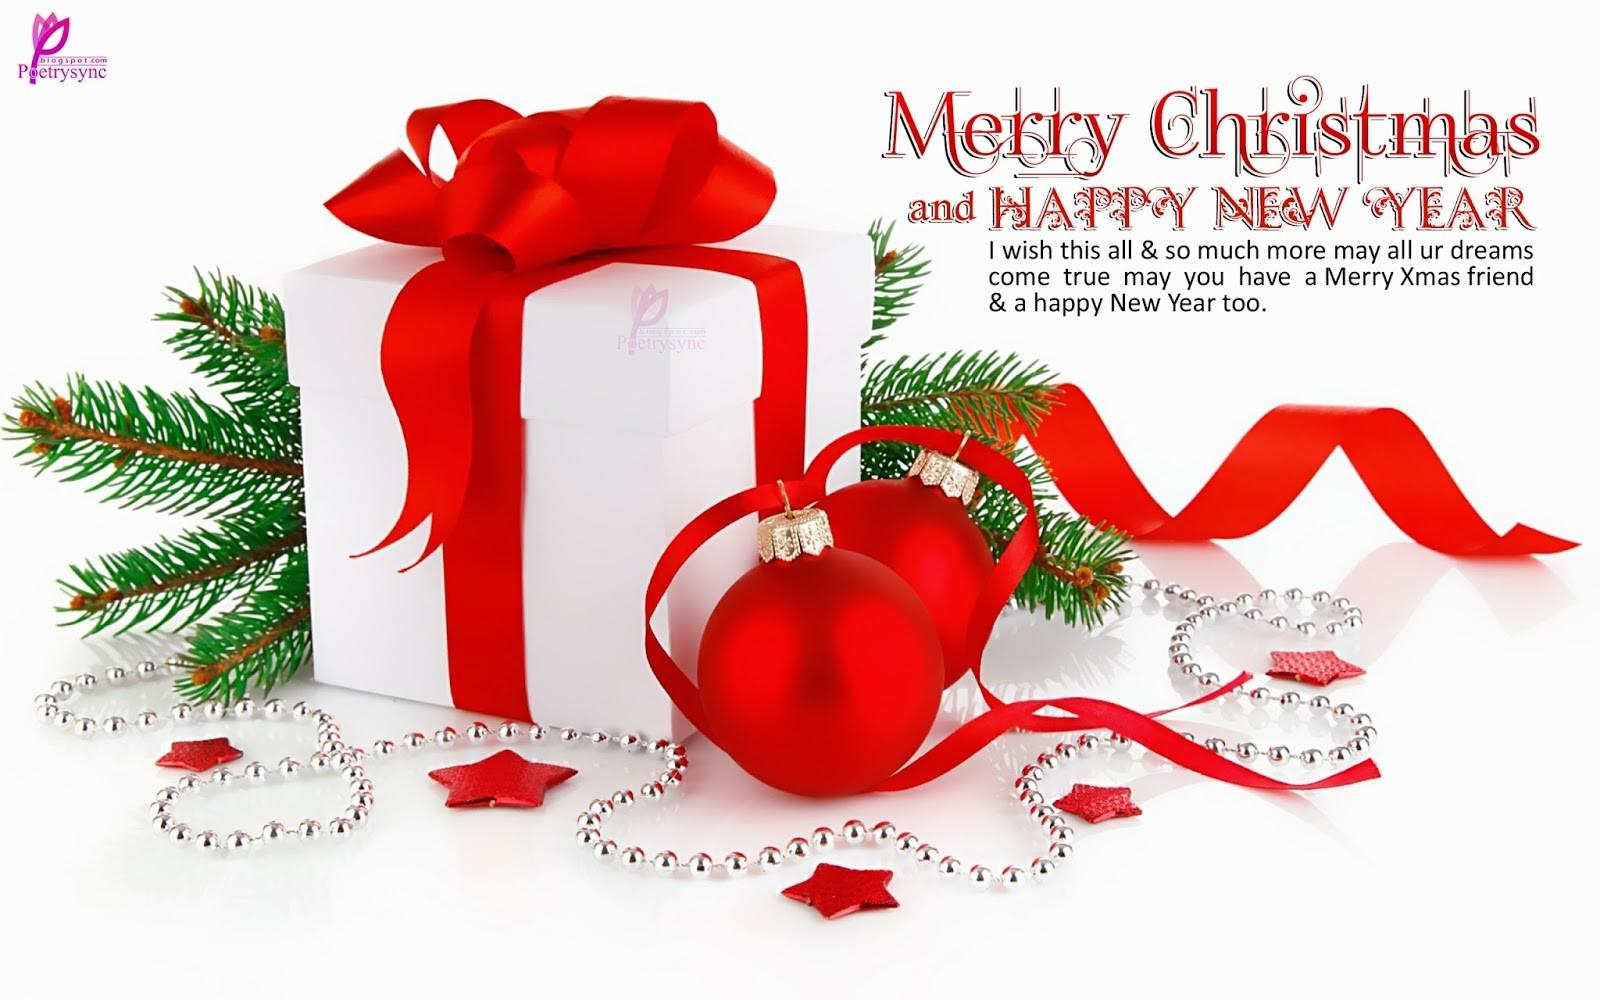 Merry Christmas Christian Friends Happy New Year